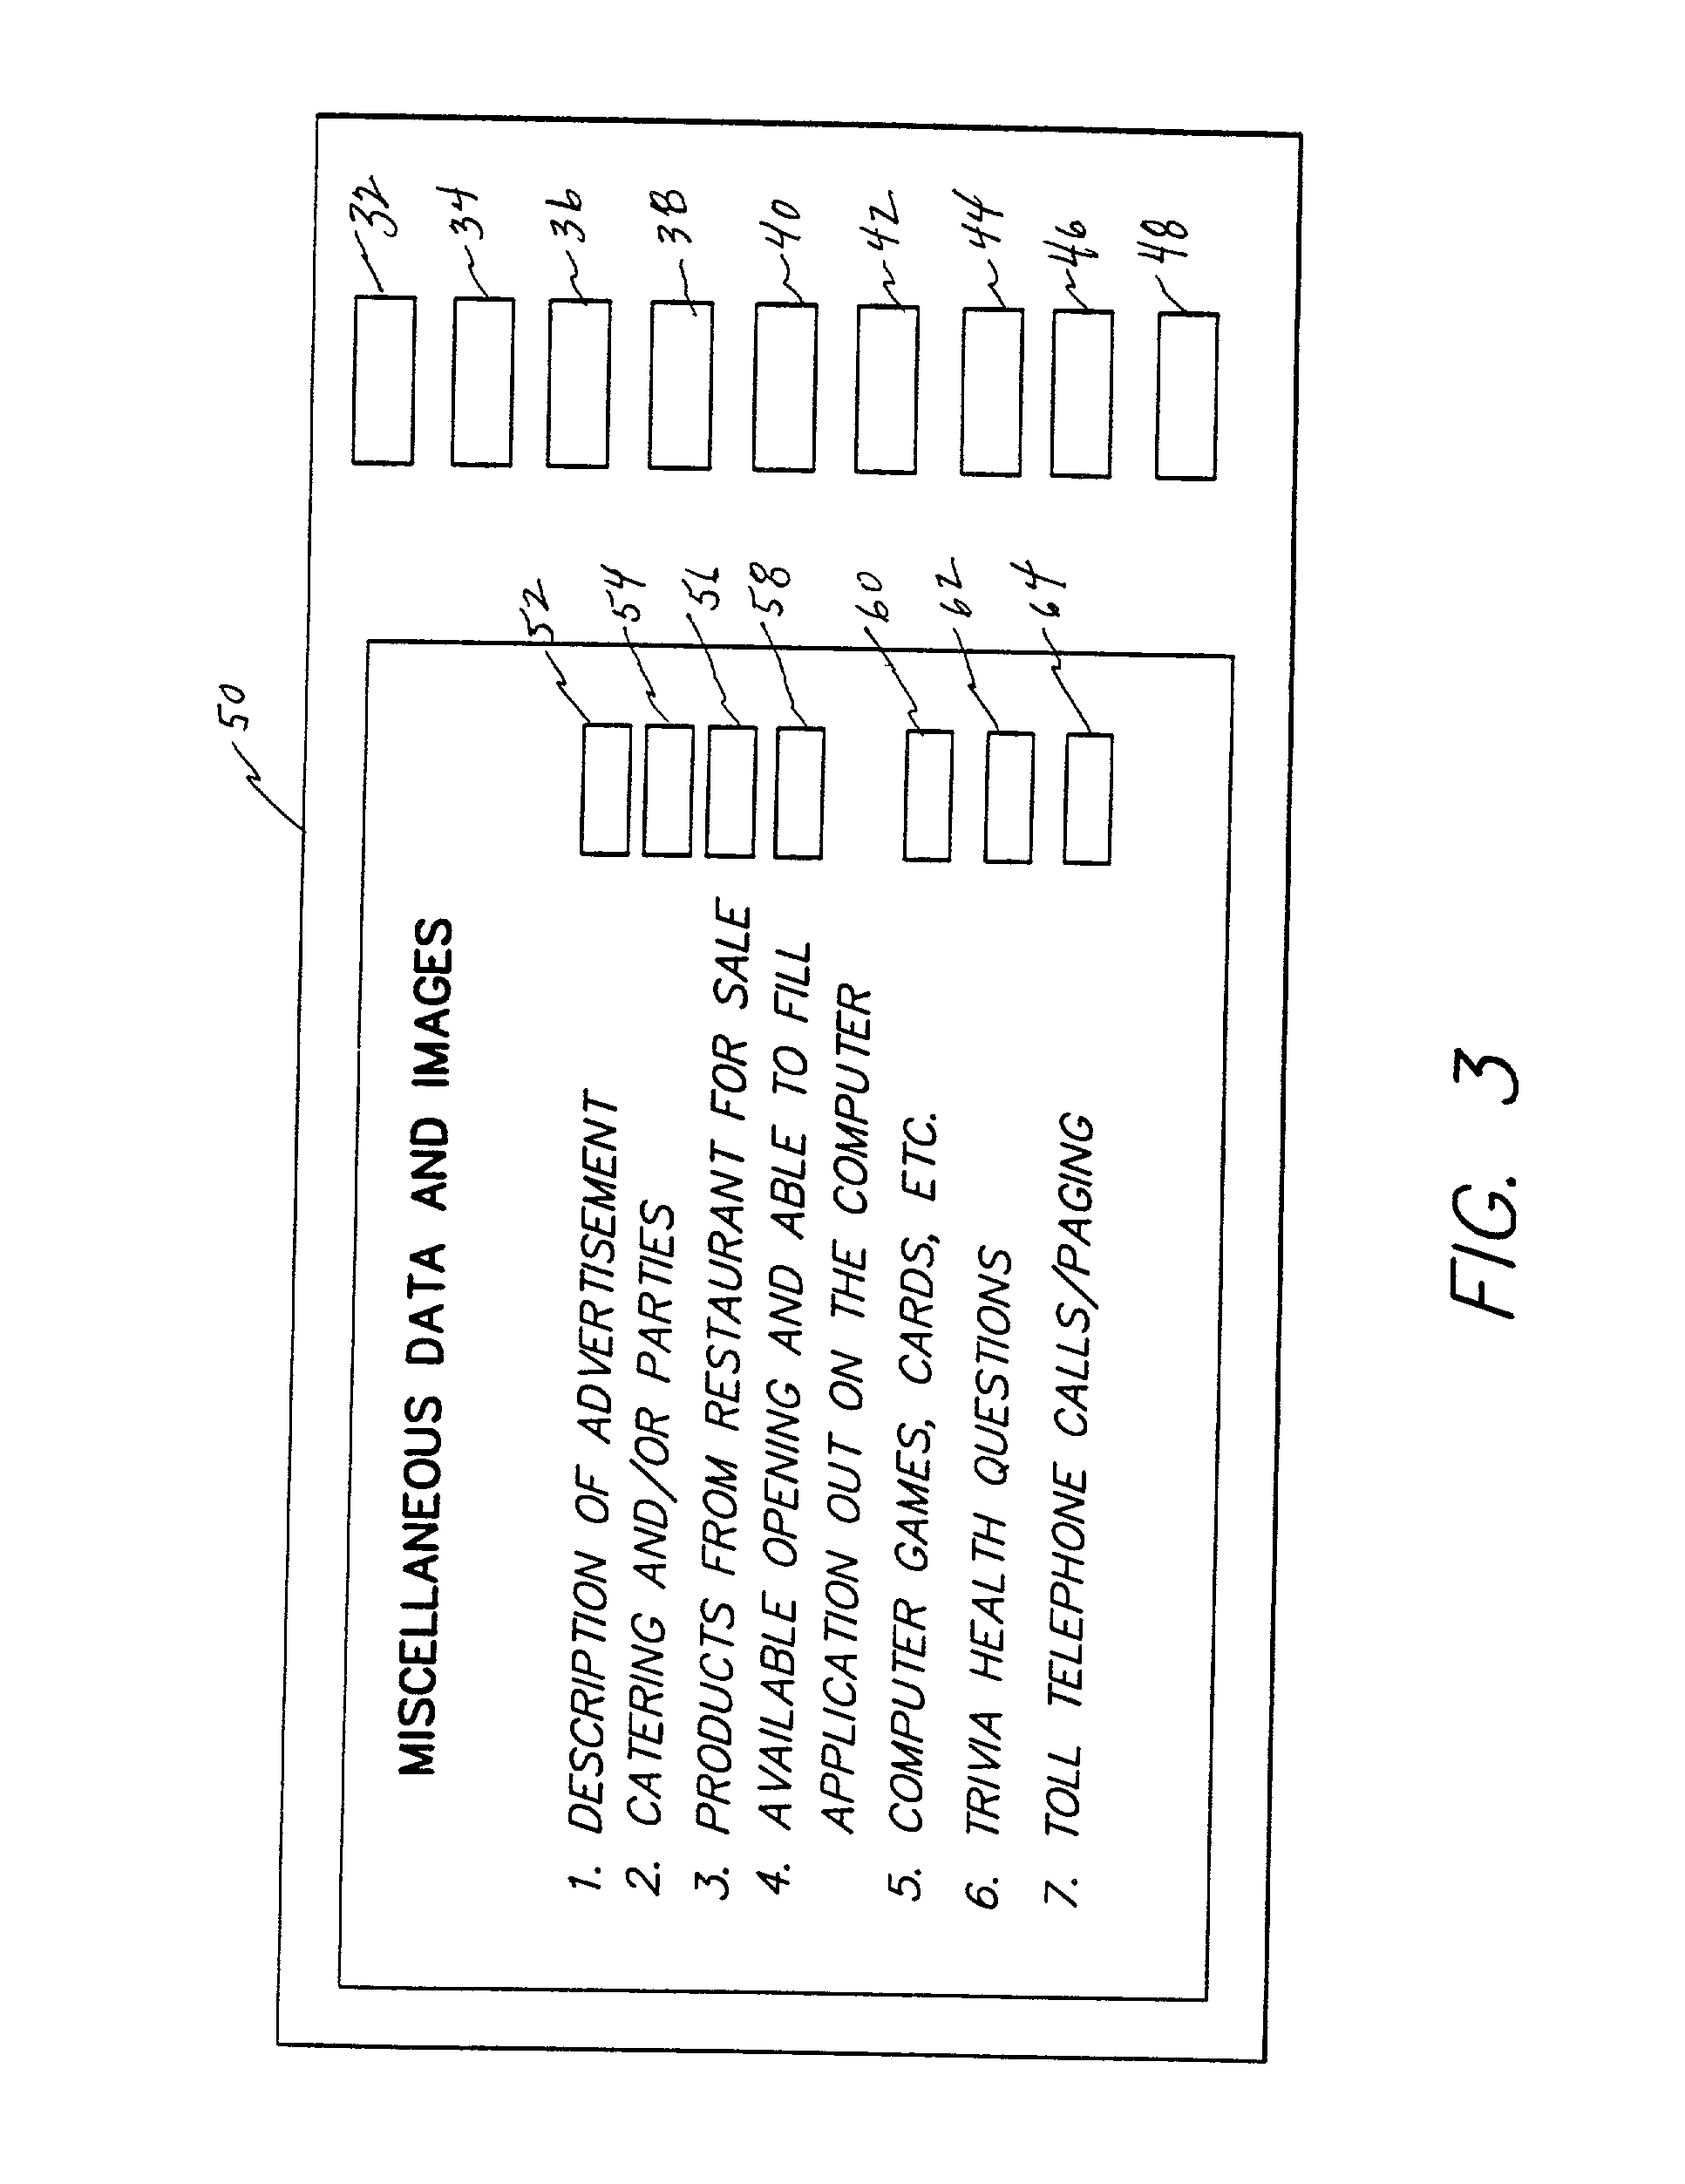 Pacific Intercom System Wiring Diagram on Aiphone Inter Systems